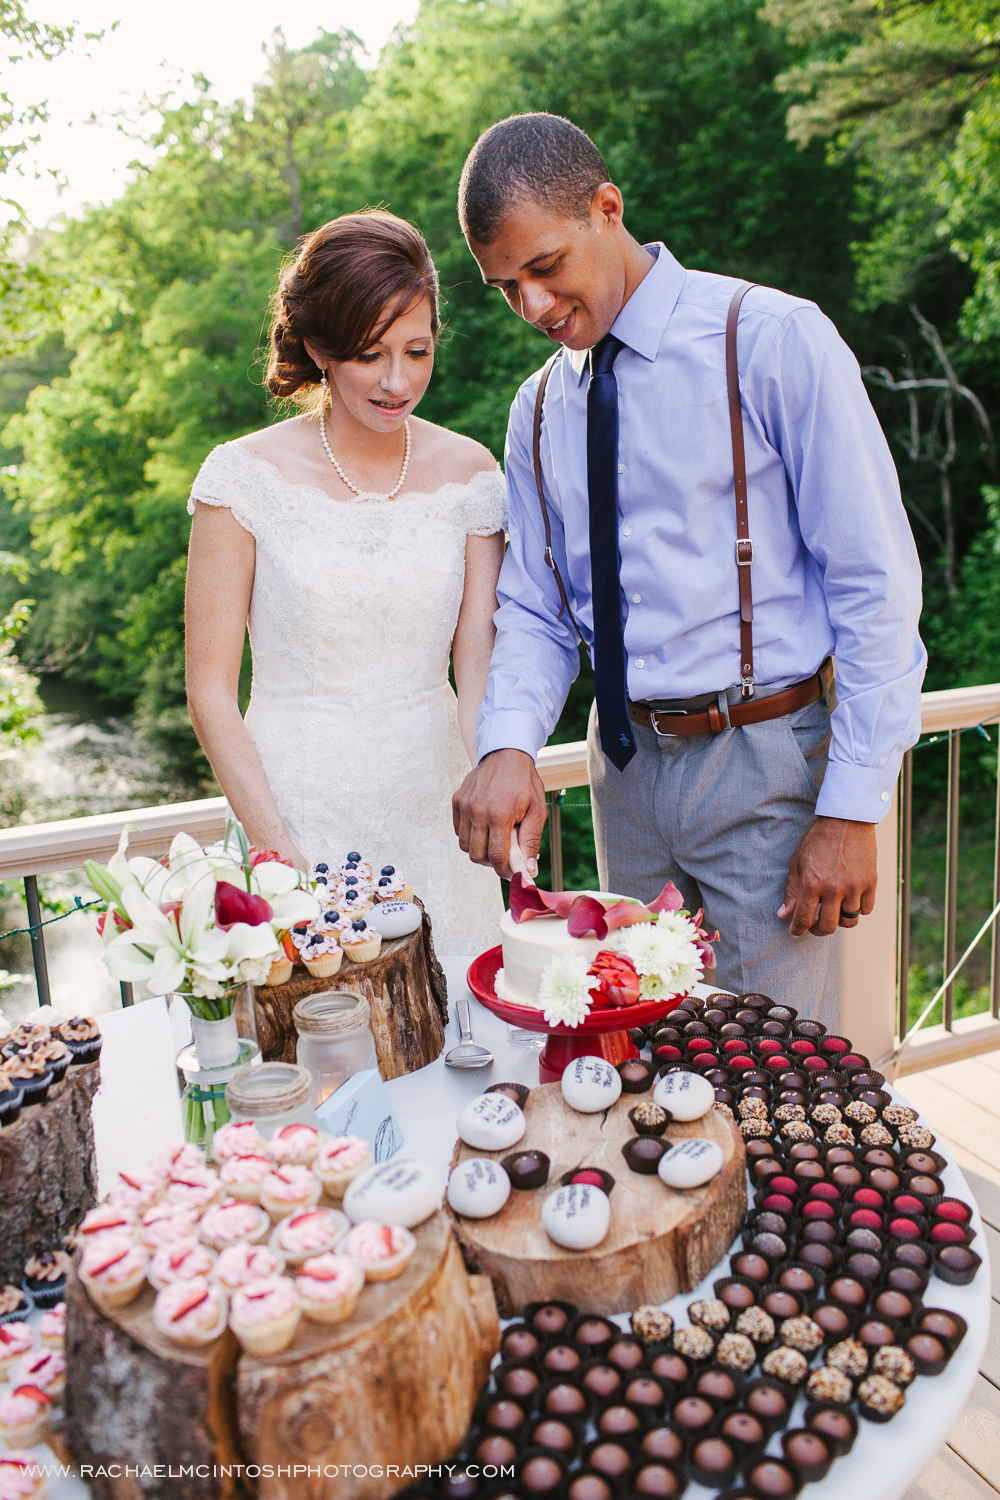 Rivers Ridge Lodge Wedding, Asheville North Carolina-127.jpg